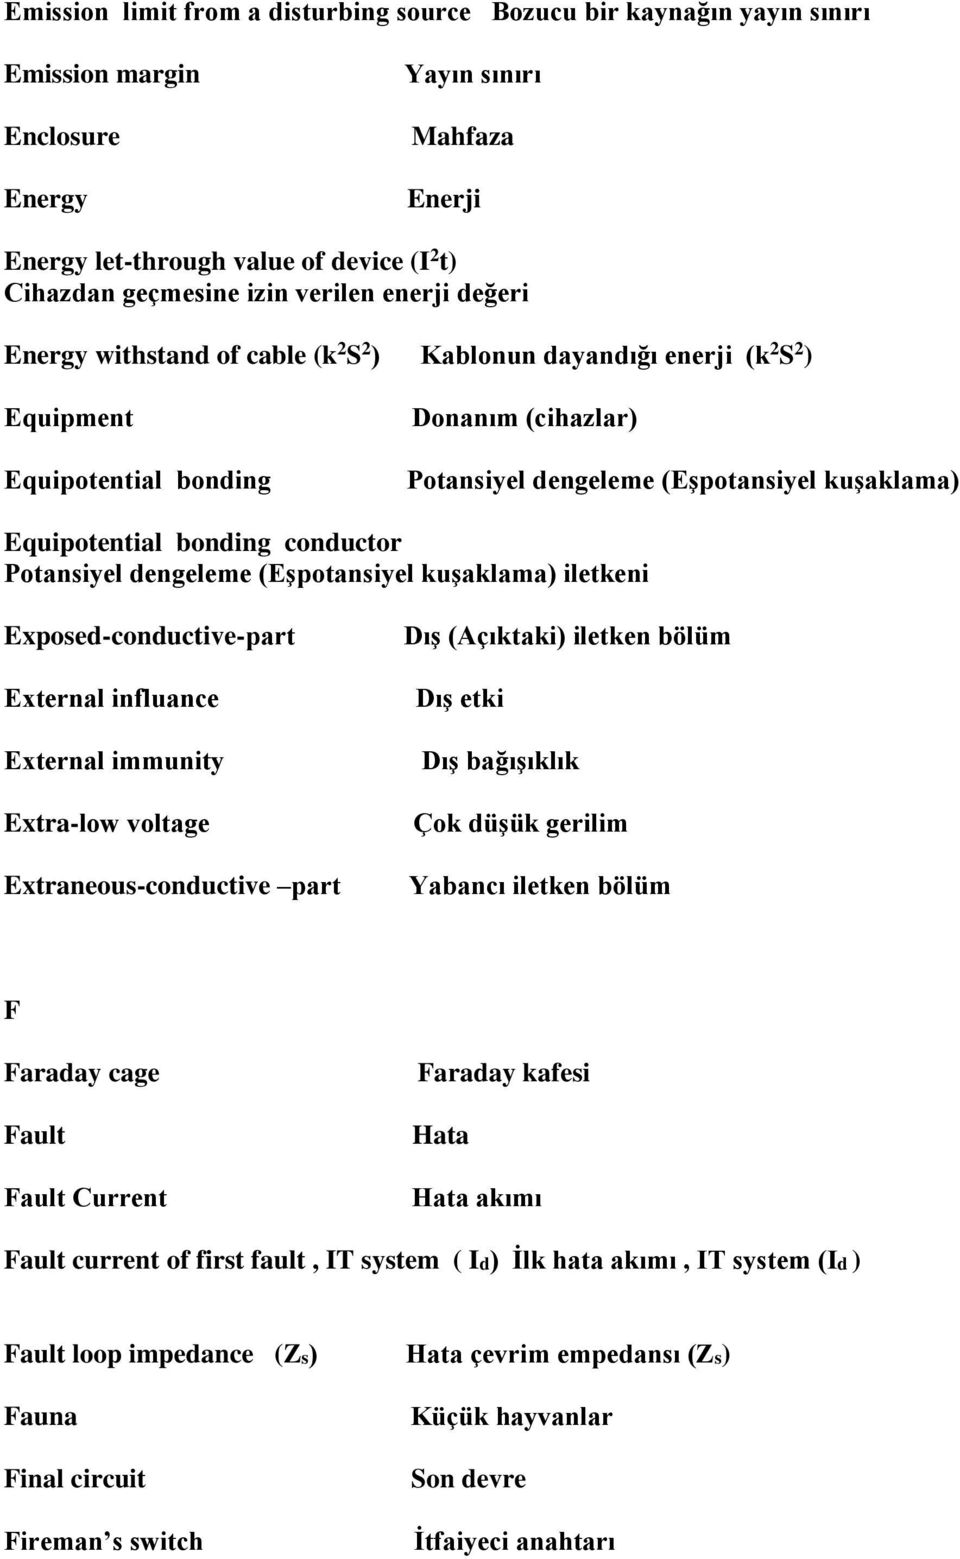 Equipotential bonding conductor Potansiyel dengeleme (Eşpotansiyel kuşaklama) iletkeni Exposed-conductive-part External influance External immunity Extra-low voltage Extraneous-conductive part Dış